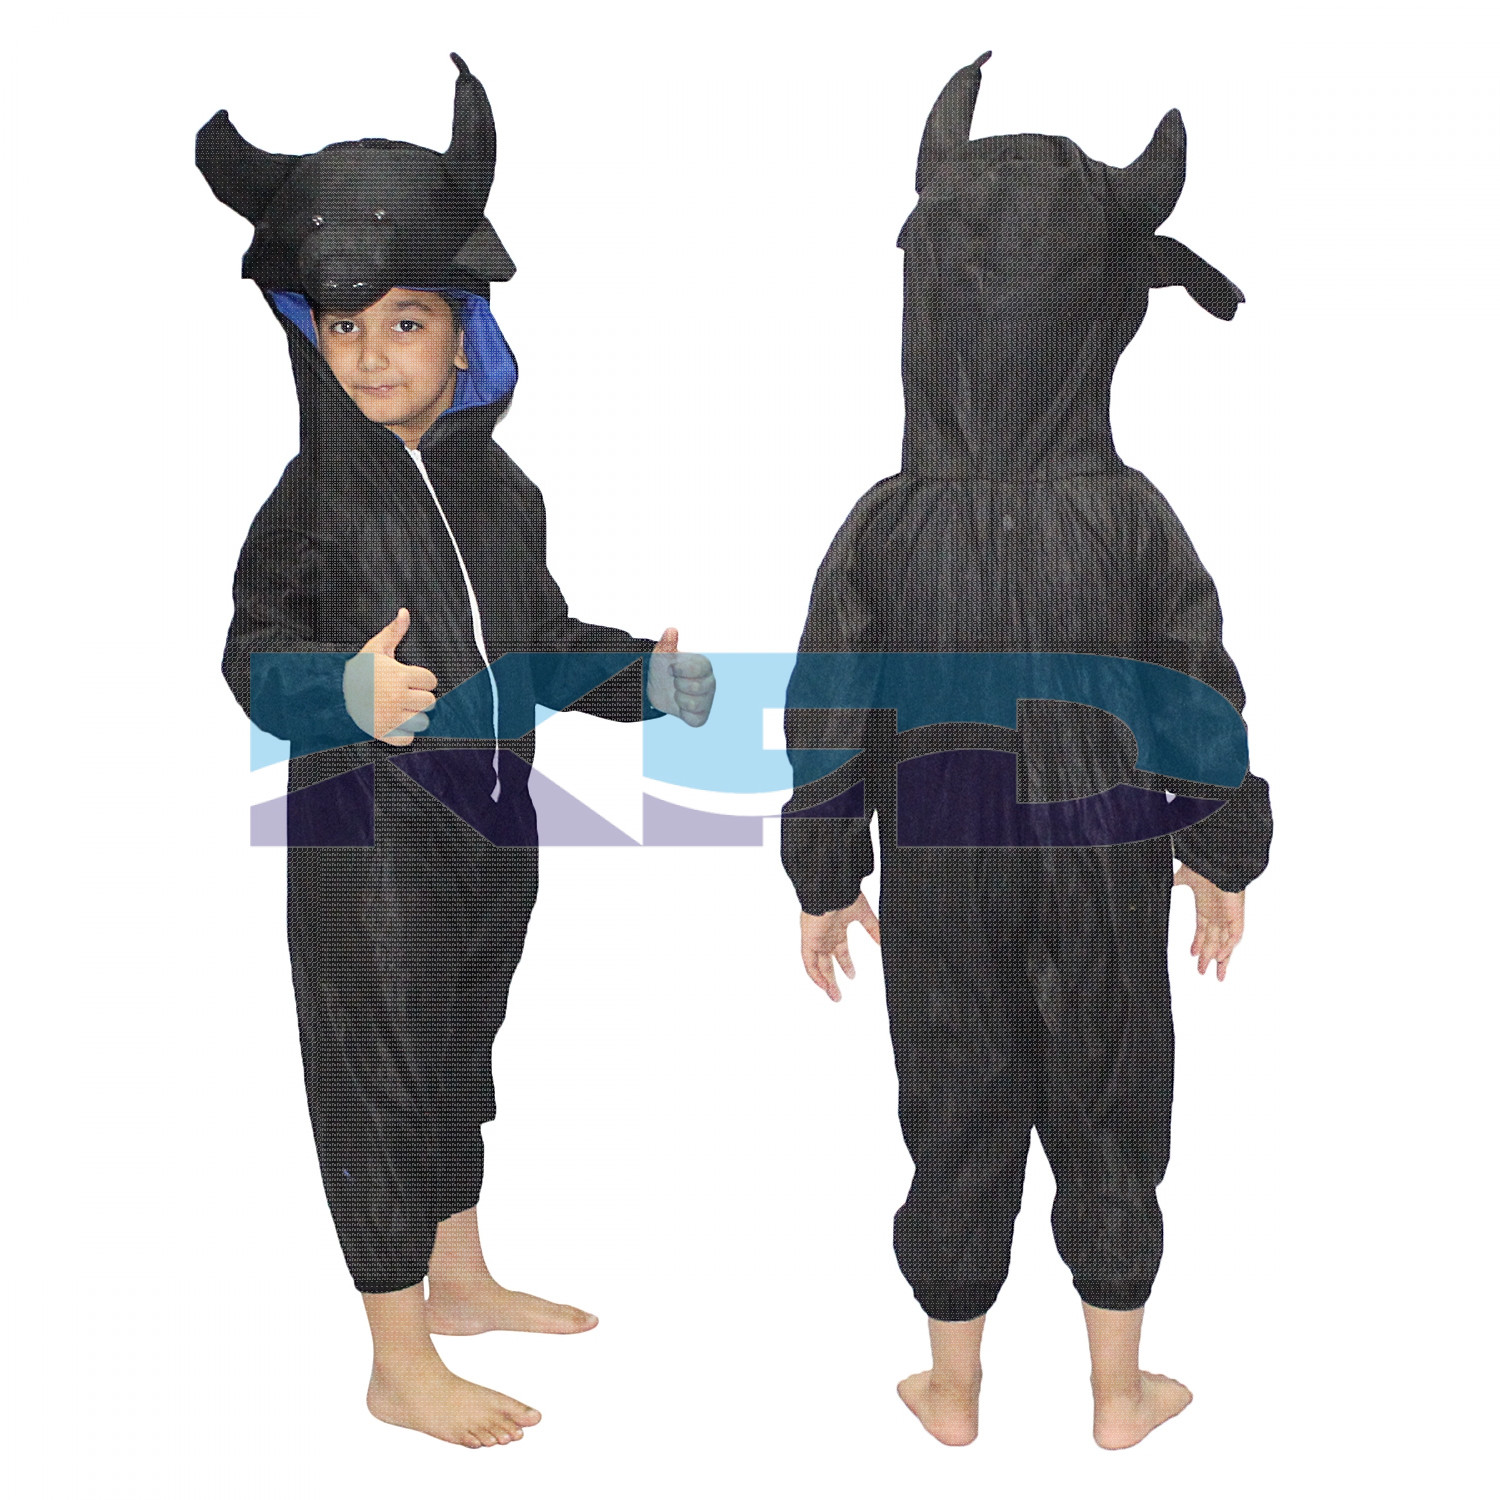 Buffalo fancy dress for kids,Farm Animal Costume for School Annual function/Theme Party/Competition/Stage Shows Dress